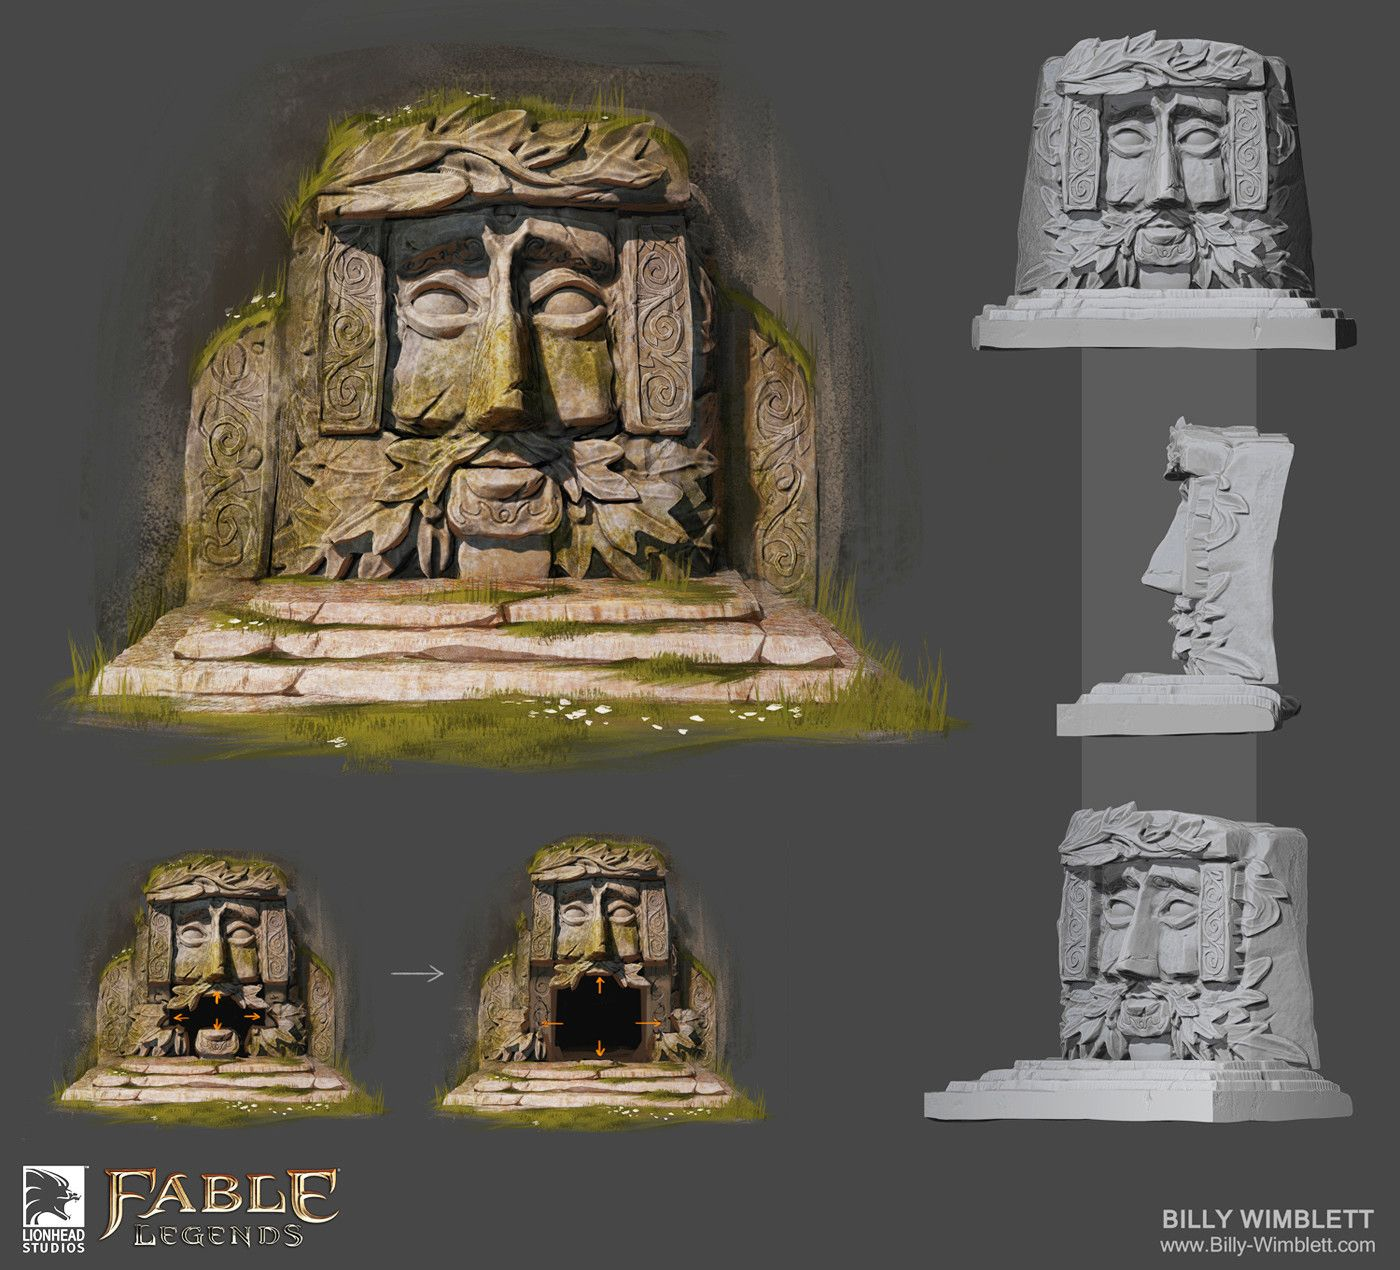 ArtStation - FABLE LEGENDS The Demon Doors Billy Wimblett & ArtStation - FABLE LEGENDS: The Demon Doors Billy Wimblett | Forest ...